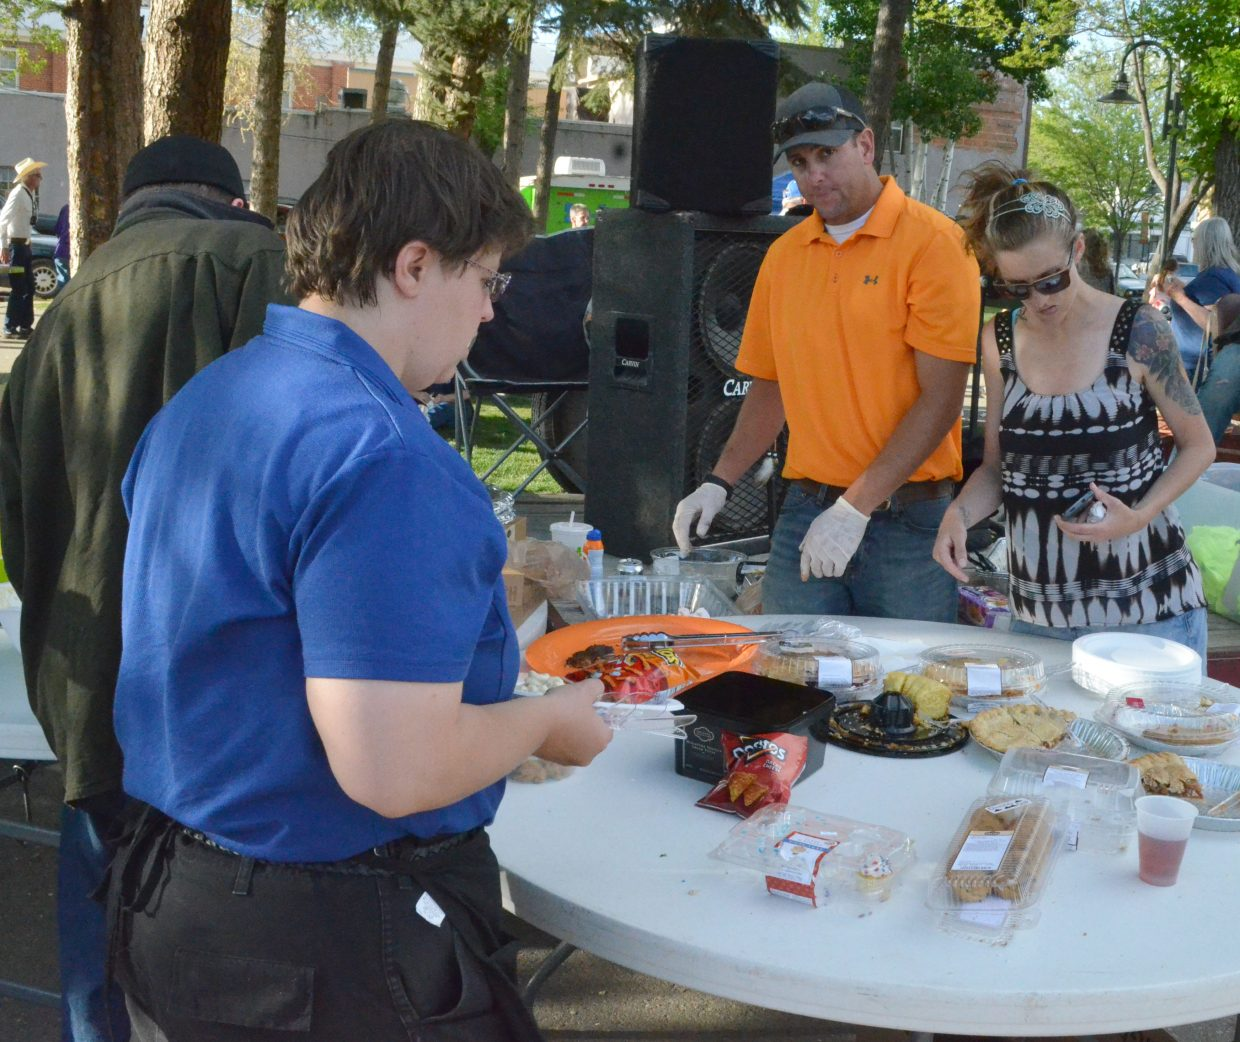 Members of Yampa Valley Young Professionals provide desserts and side dishes as part of Friday Fest and Dinner on the Avenue in Alice Pleasant Park.